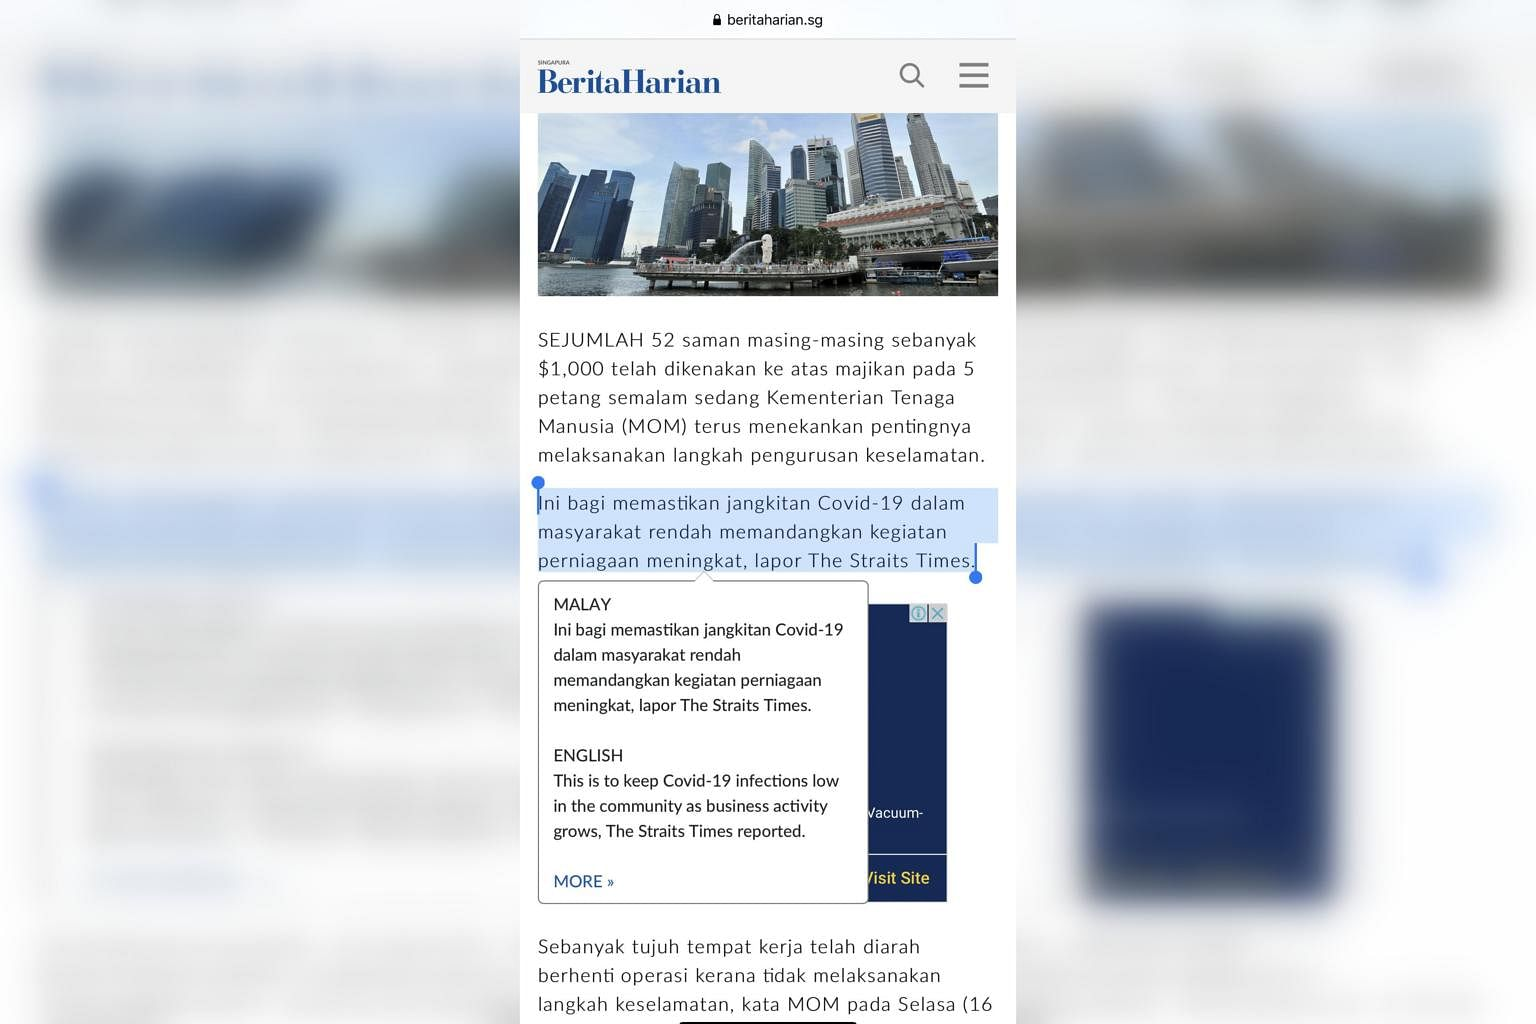 New Tool To Translate News In Berita Harian From Malay To English Singapore News Top Stories The Straits Times